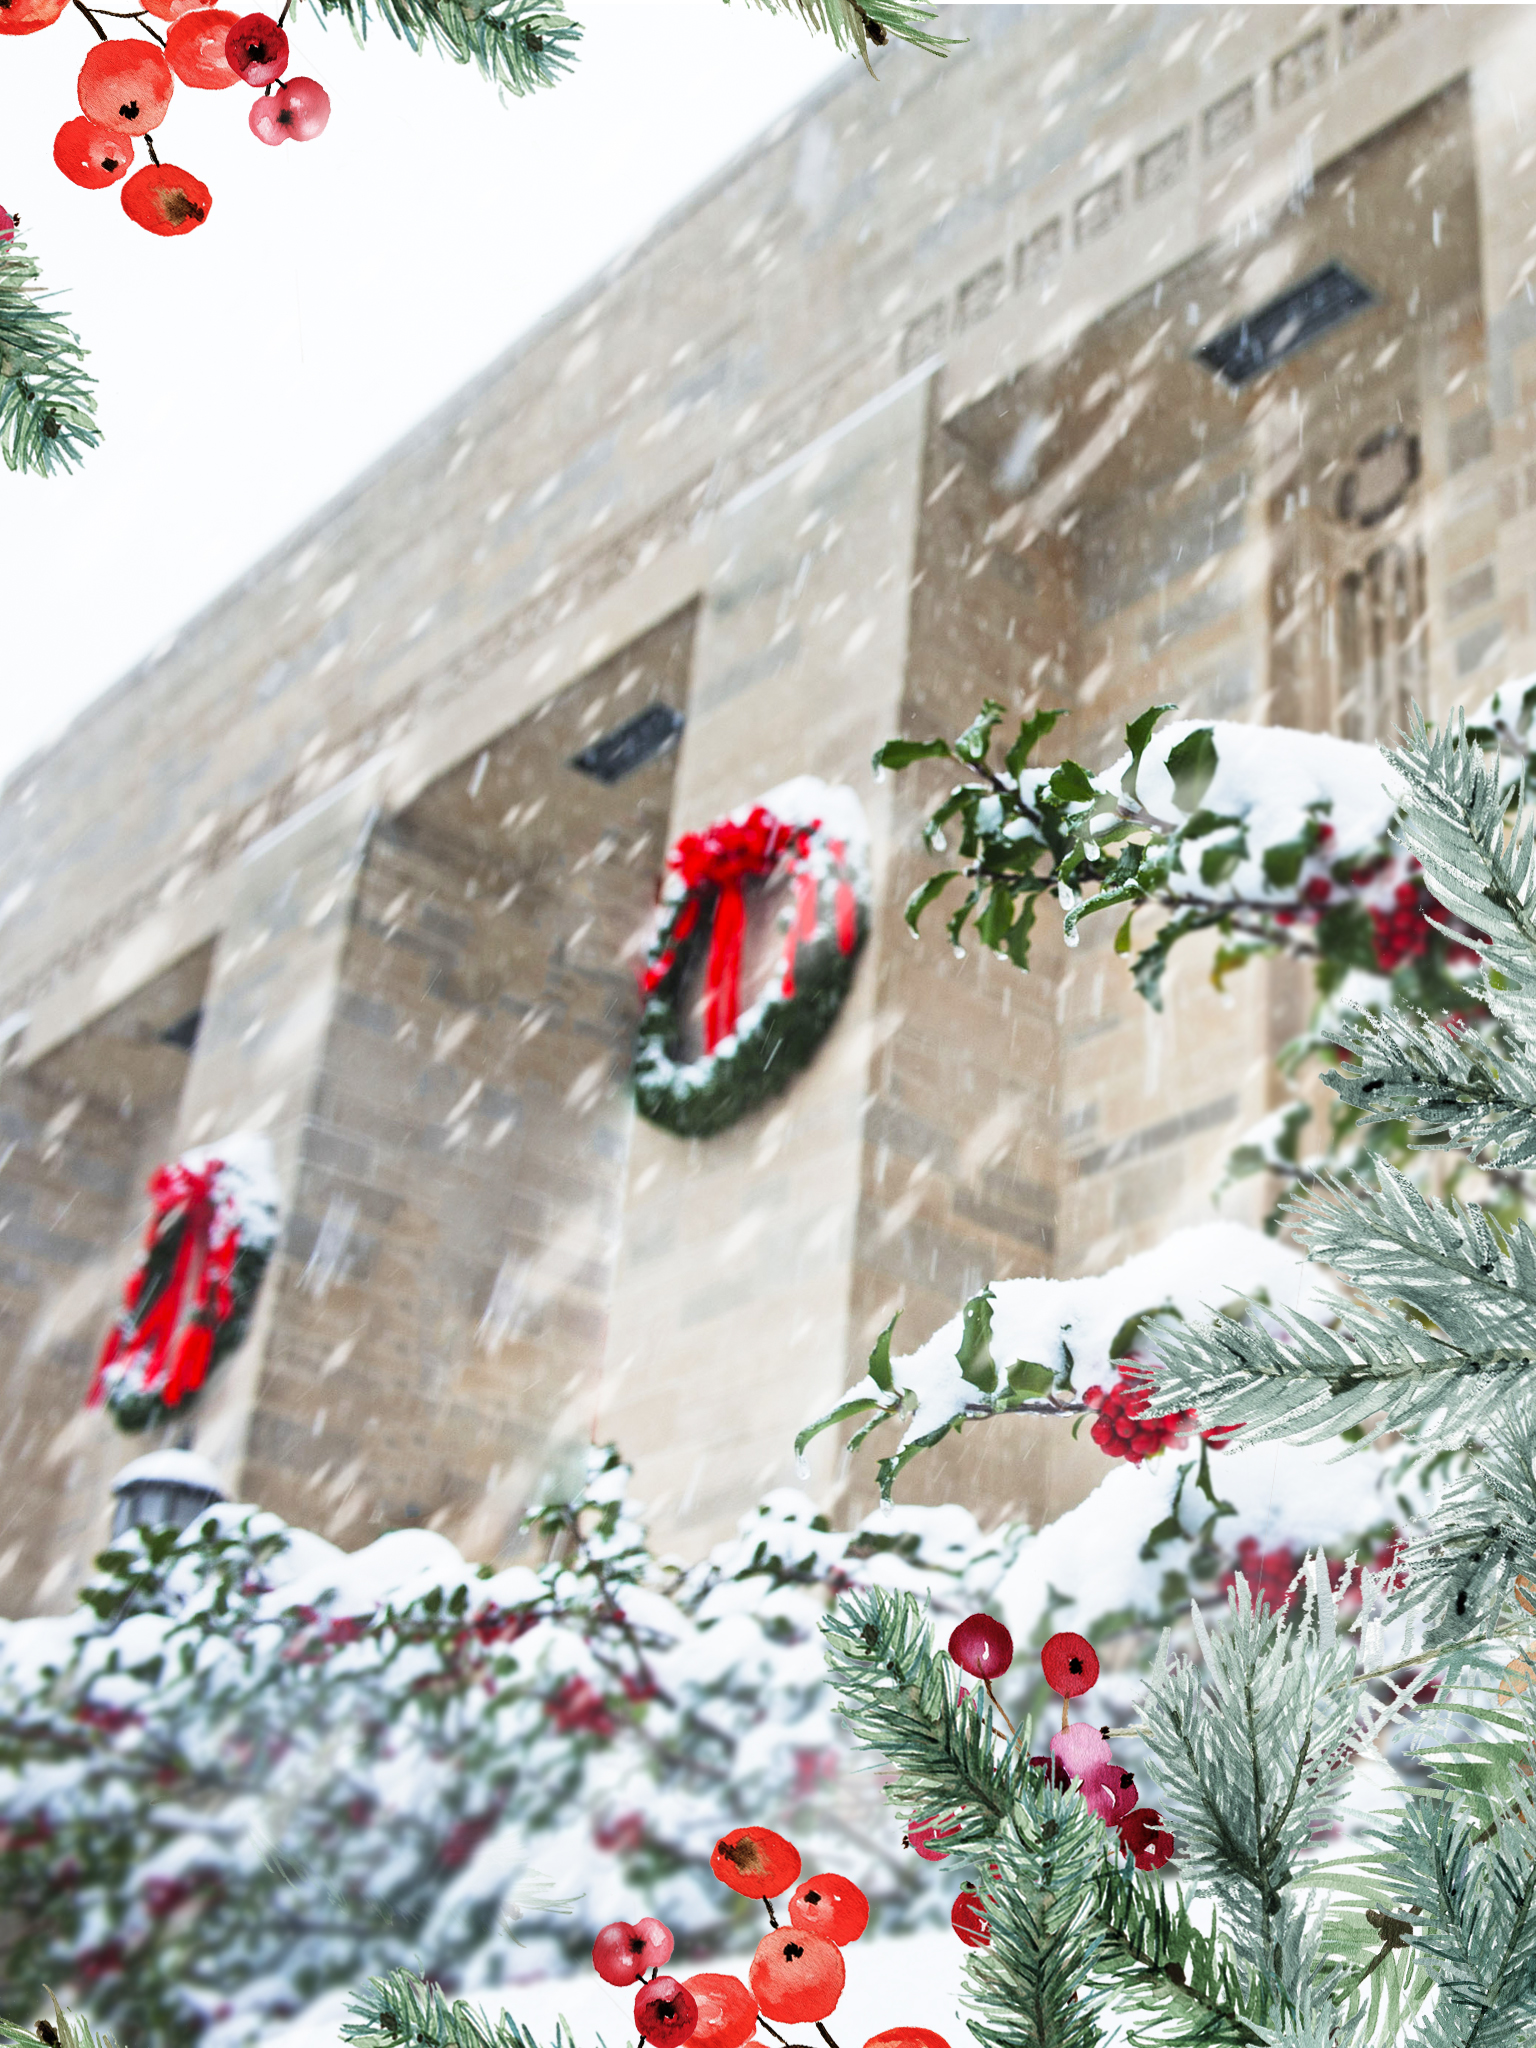 A festive frame of greenery is overlaid on a photo of the Lilly Library in the snow.